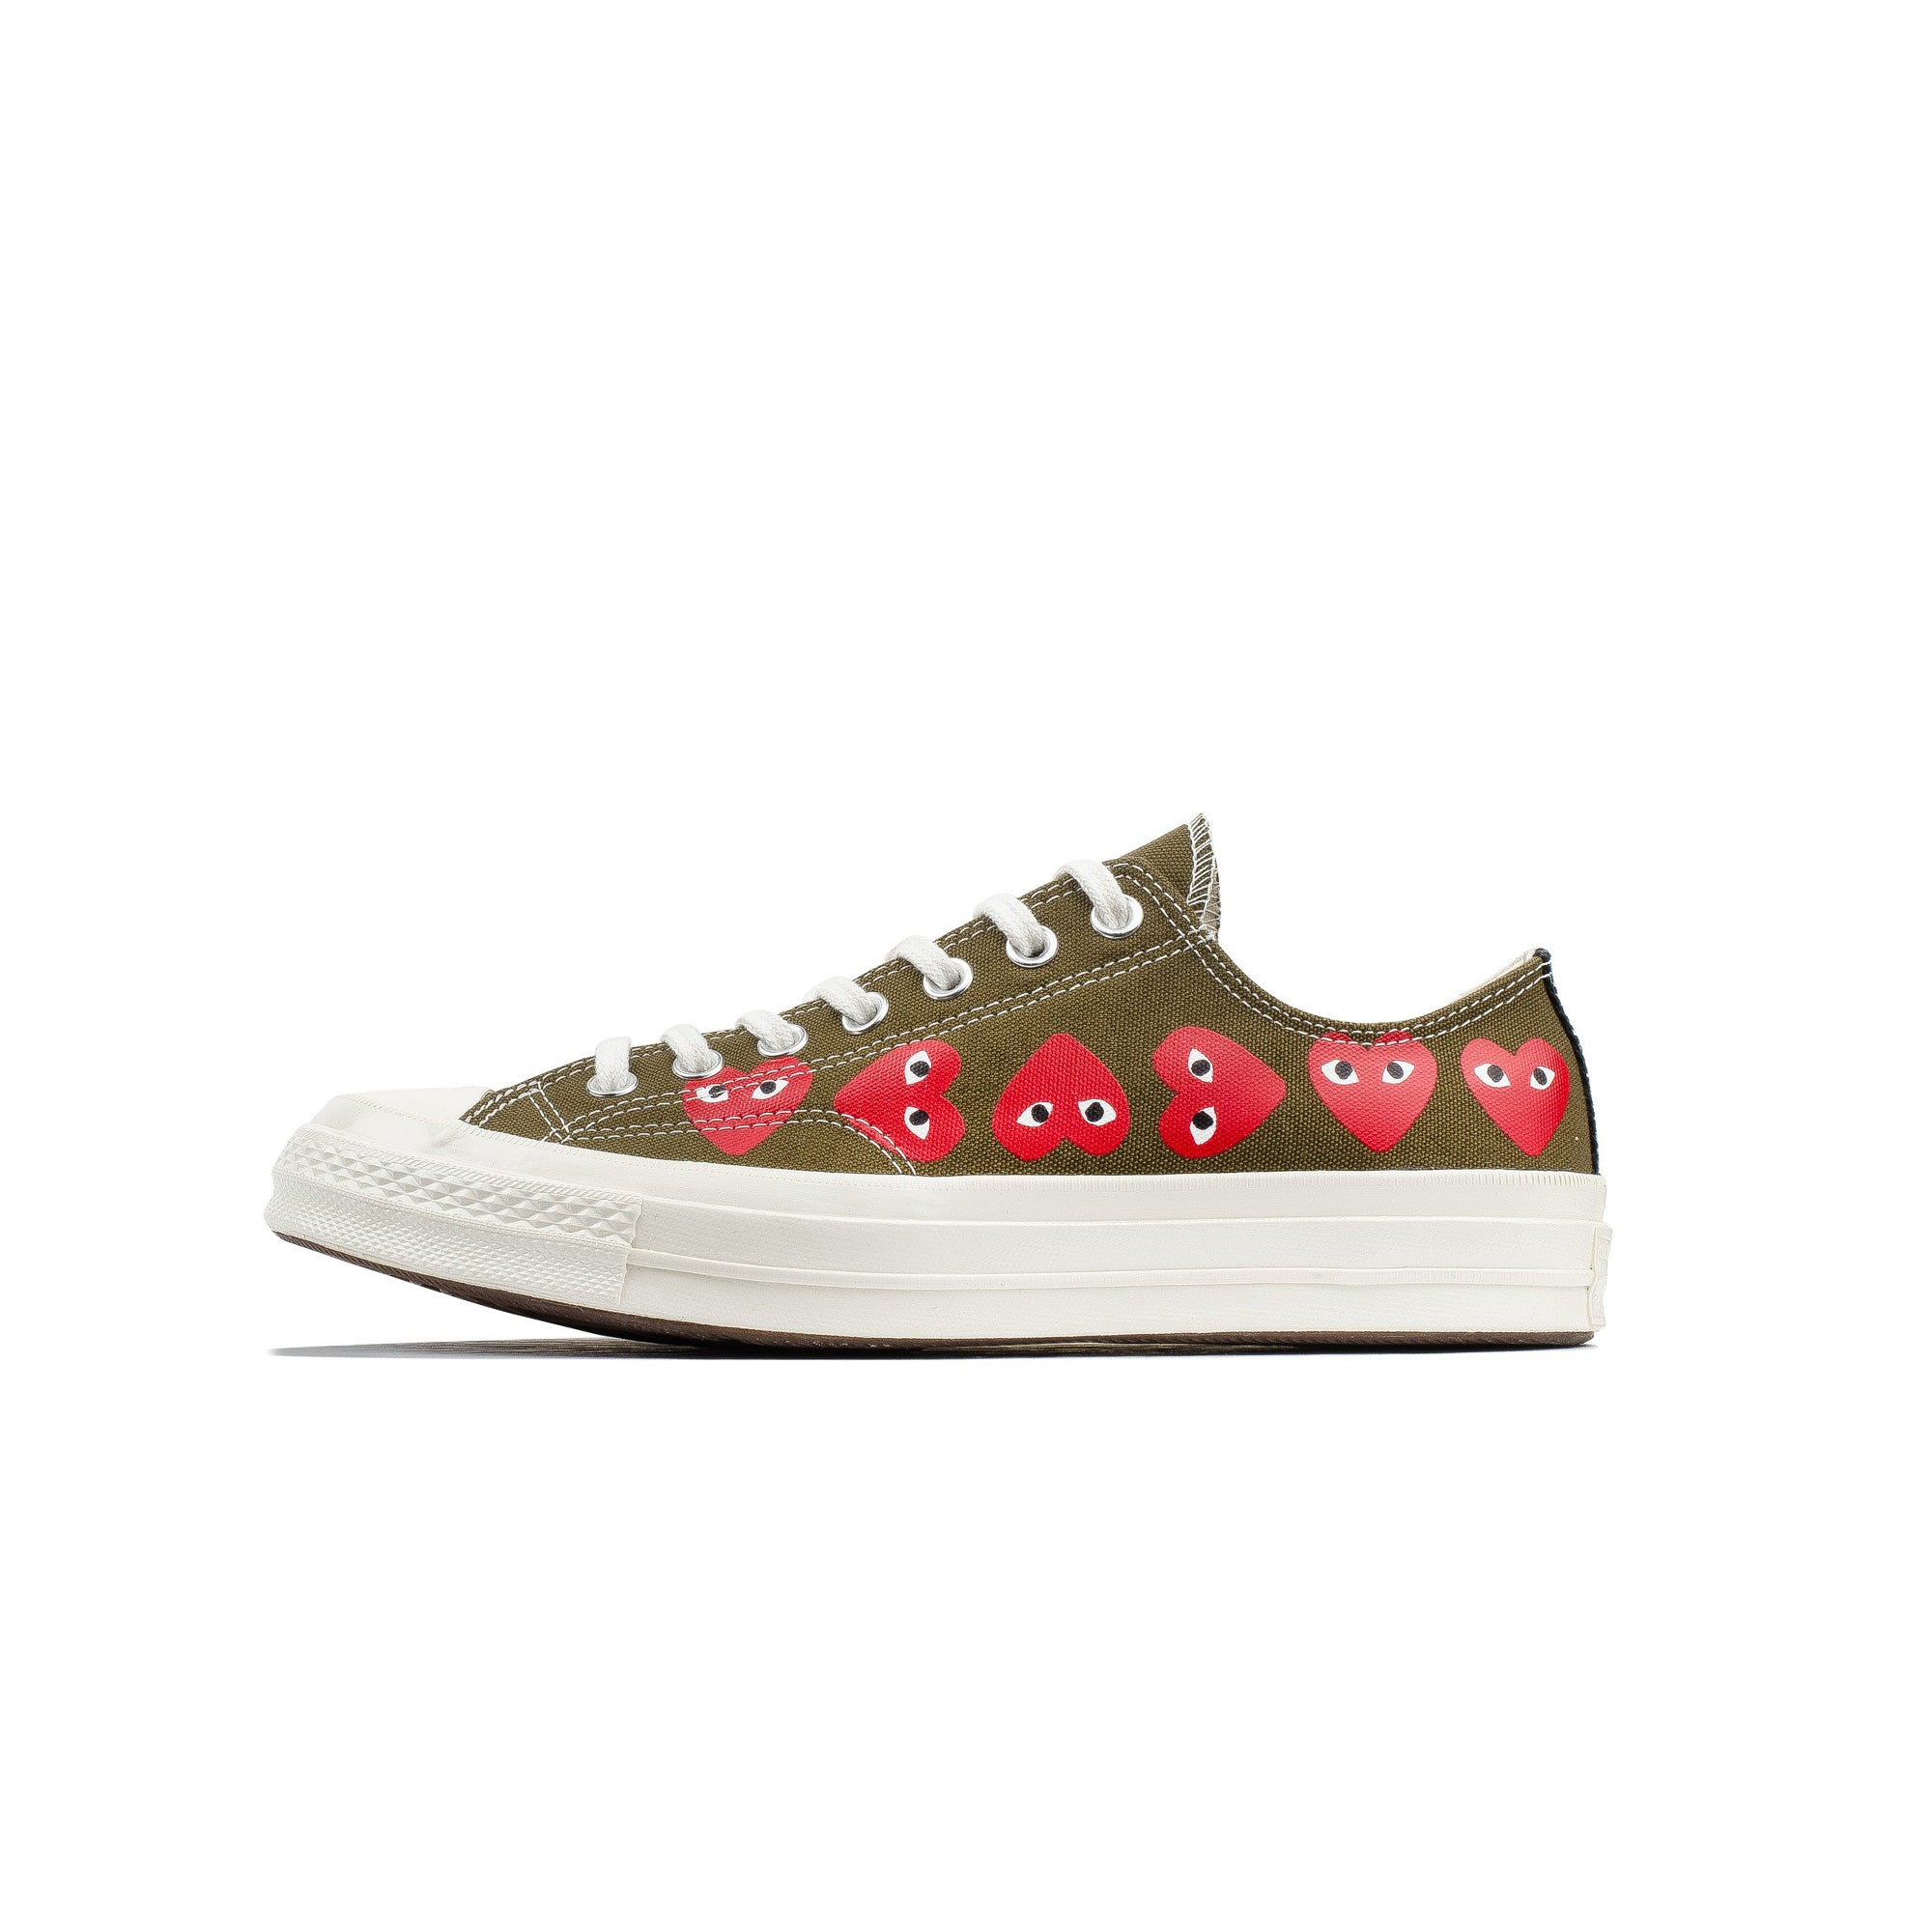 97d2a4fbda8b Comme des Garcons PLAY x Converse Chuck 70 Low Multi Heart  162976C